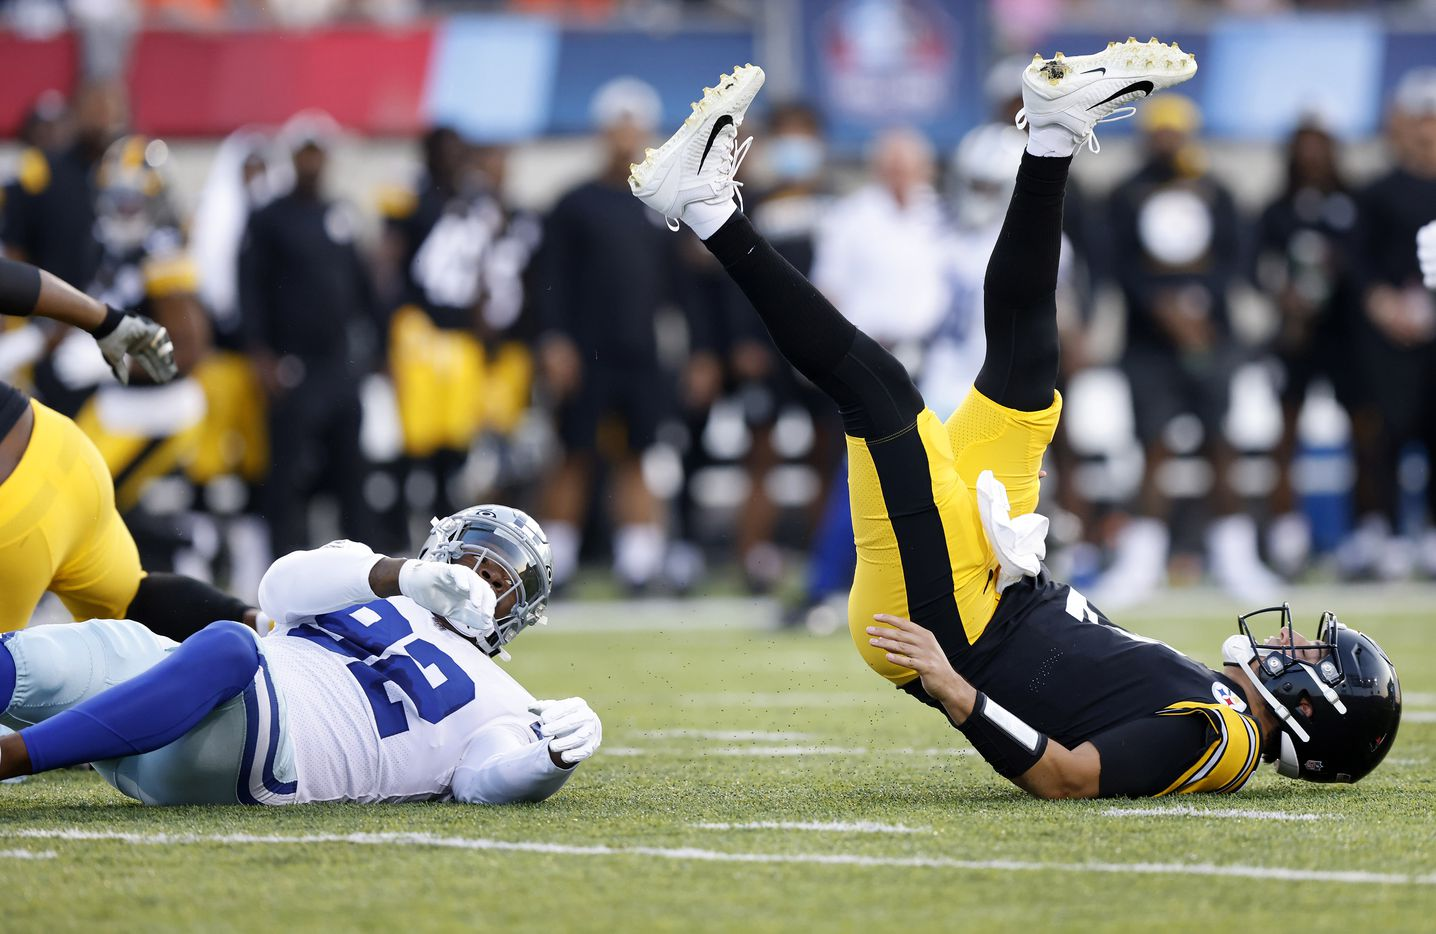 Dallas Cowboys defensive end Dorance Armstrong (92) knocks Pittsburgh Steelers quarterback Mason Rudolph (2) to the ground during a first quarter pass attempt. The Cowboys and Steelers were playing in their first preseason game at Tom Benson Hall of Fame Stadium in Canton, Ohio, Thursday, August 5, 2021. (Tom Fox/The Dallas Morning News)